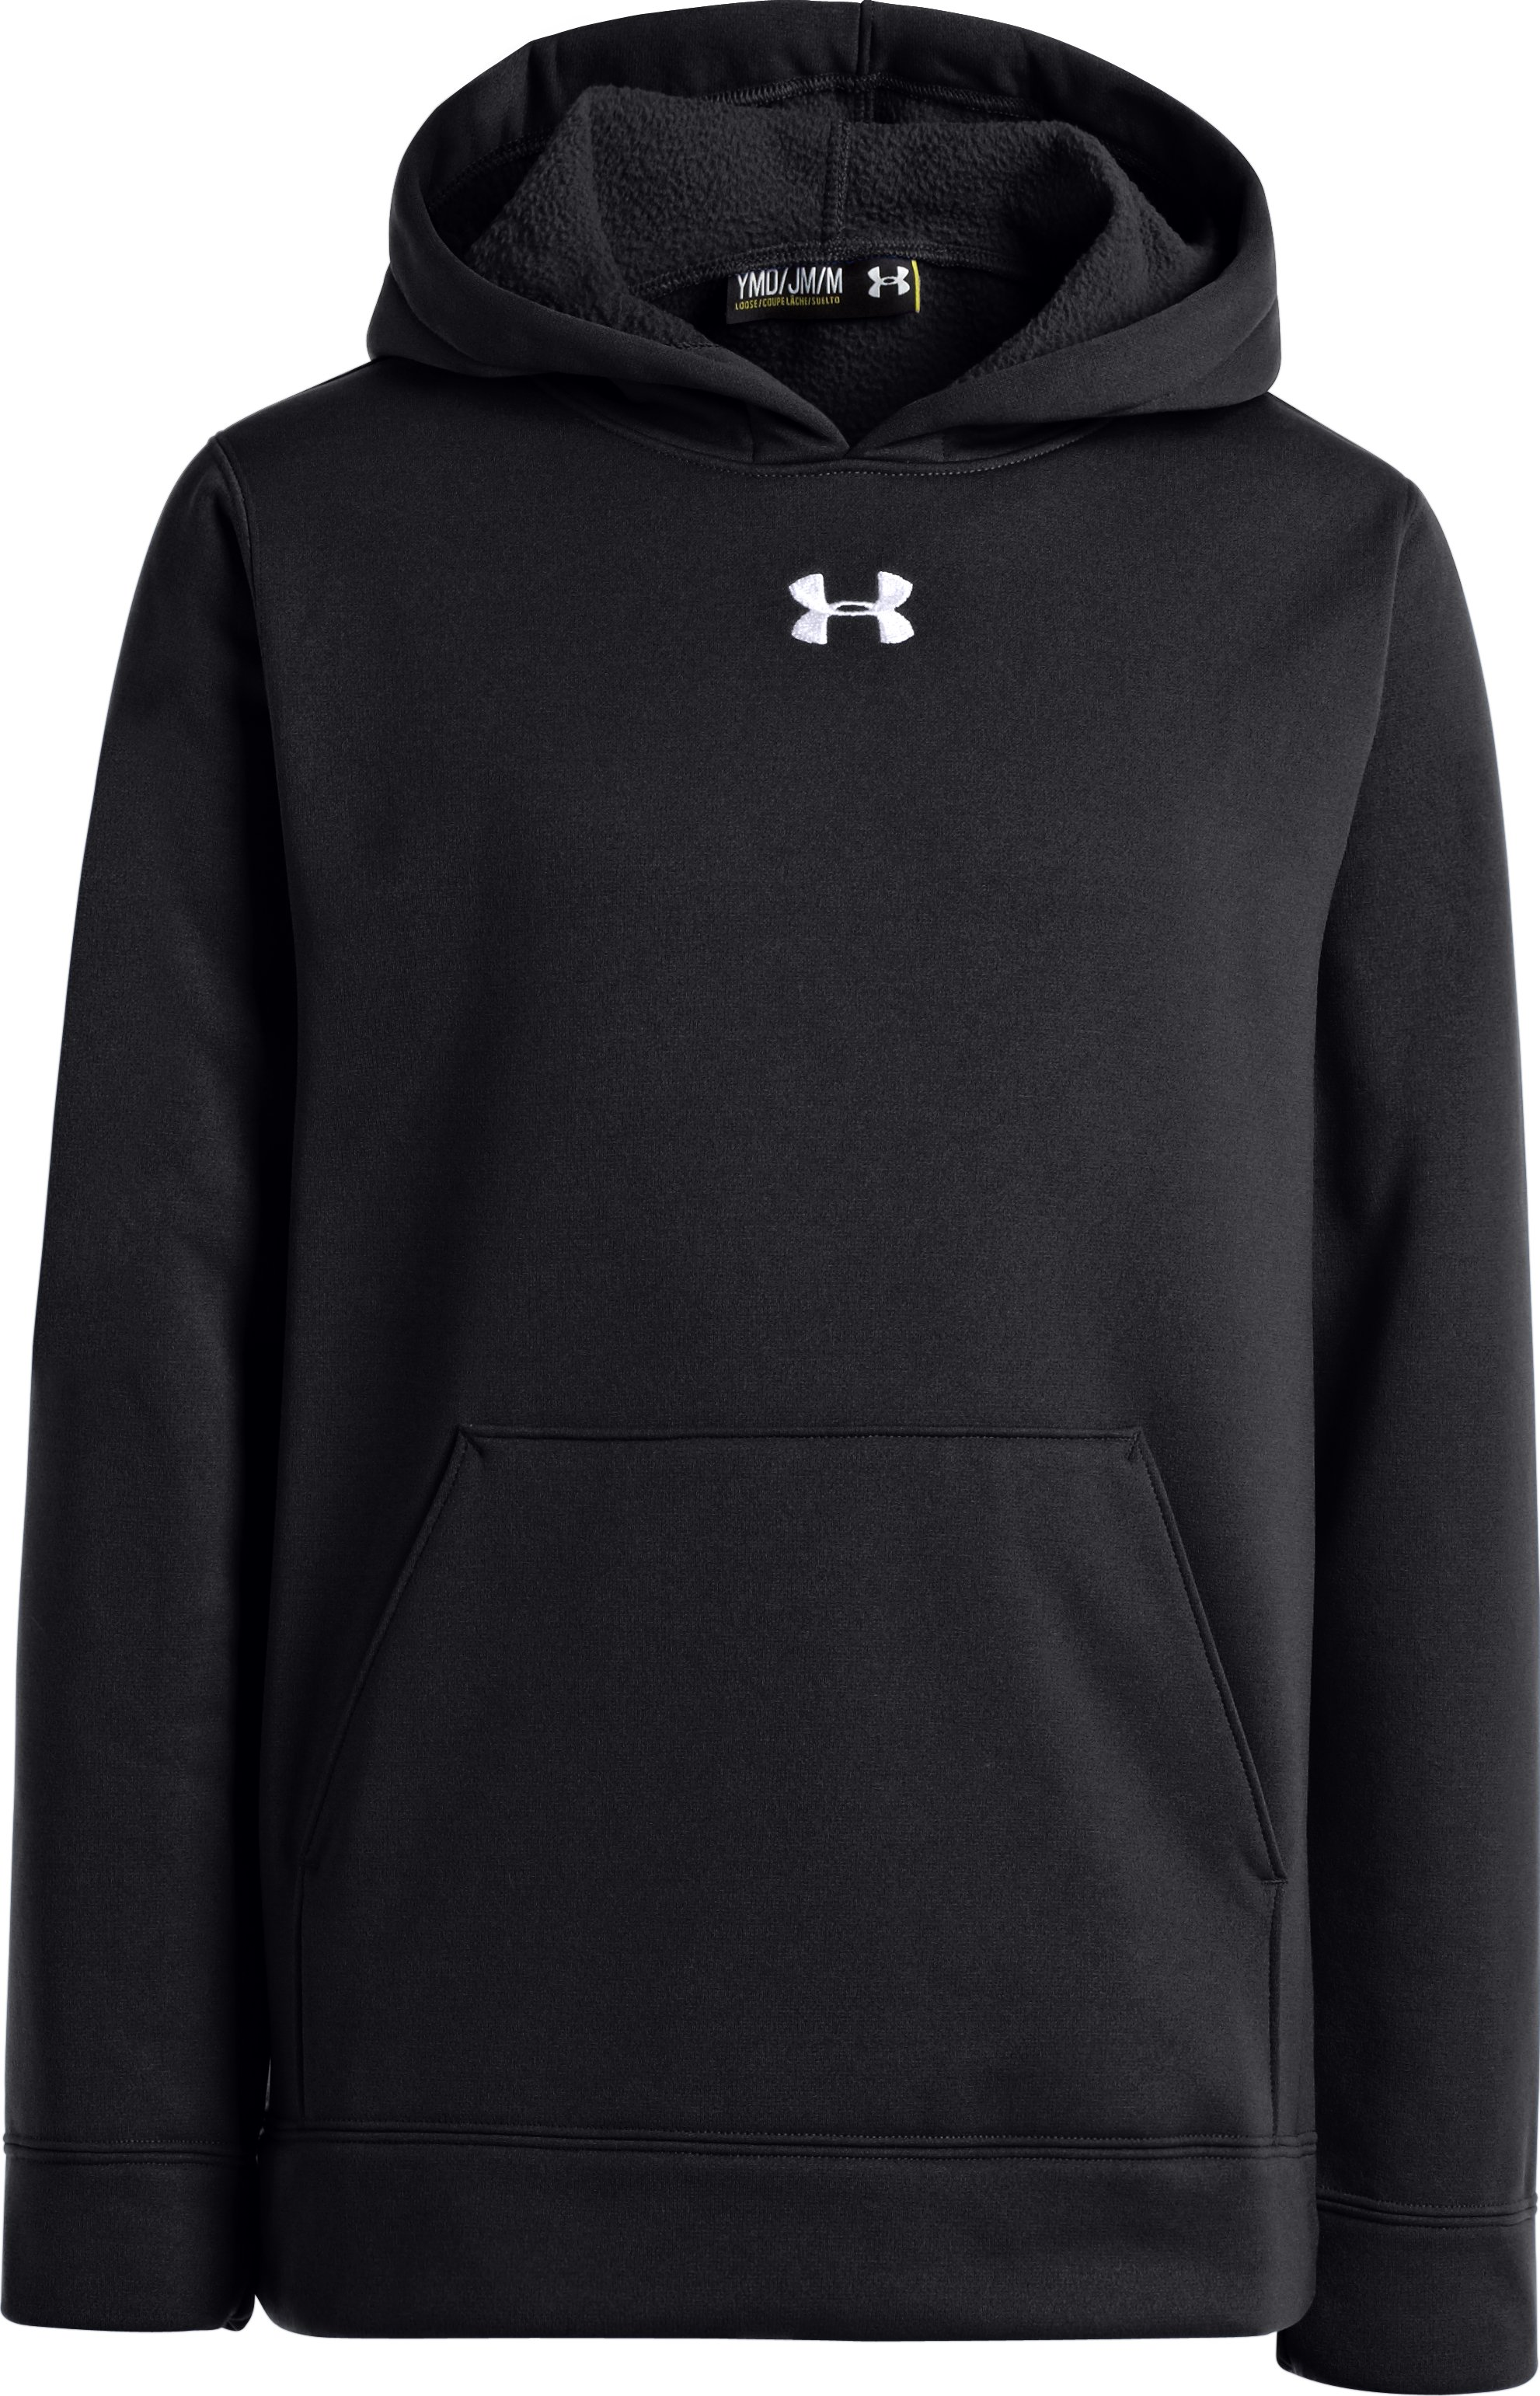 Boys' Armour® Fleece Storm Team Hoodie, Black , zoomed image